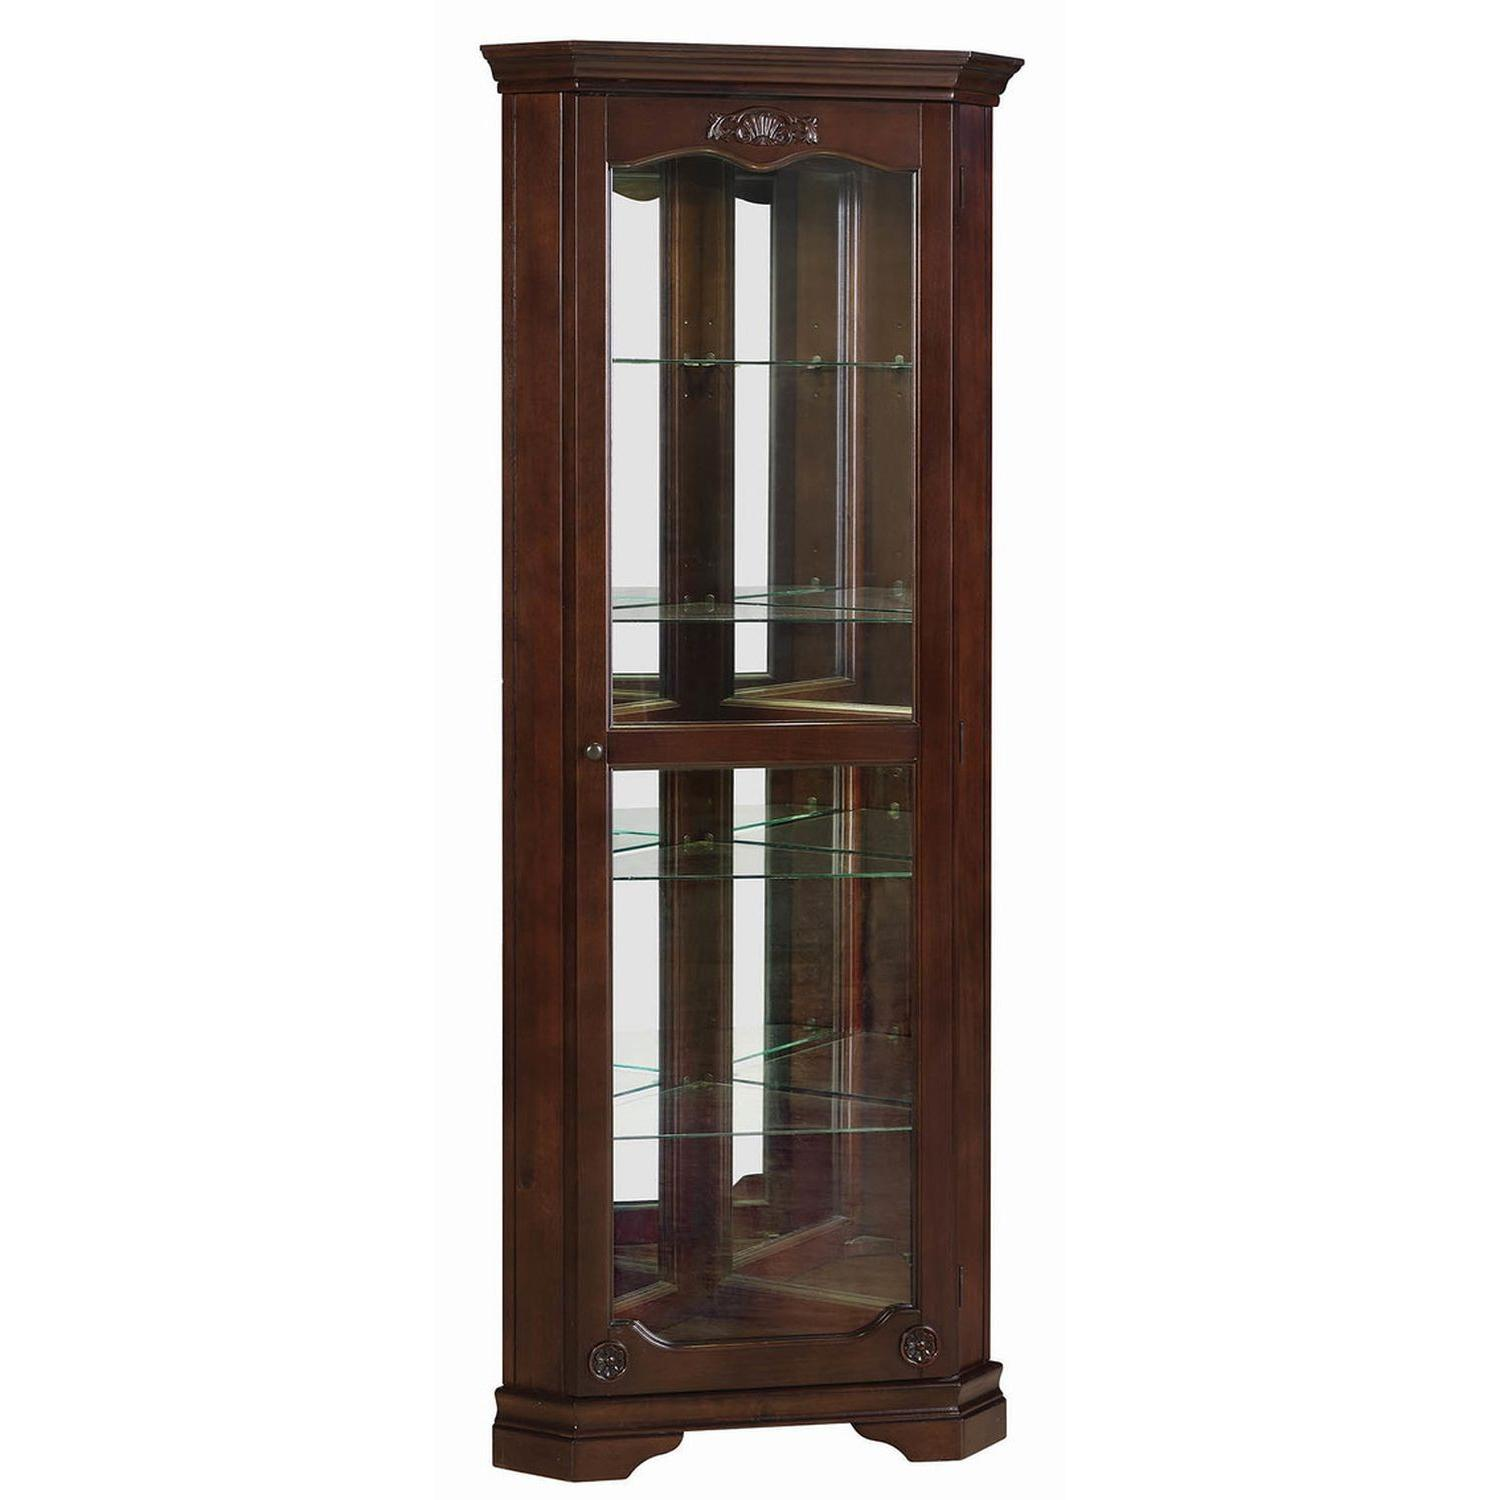 Classic Curio Cabinet in Golden Brown Finish - image-4